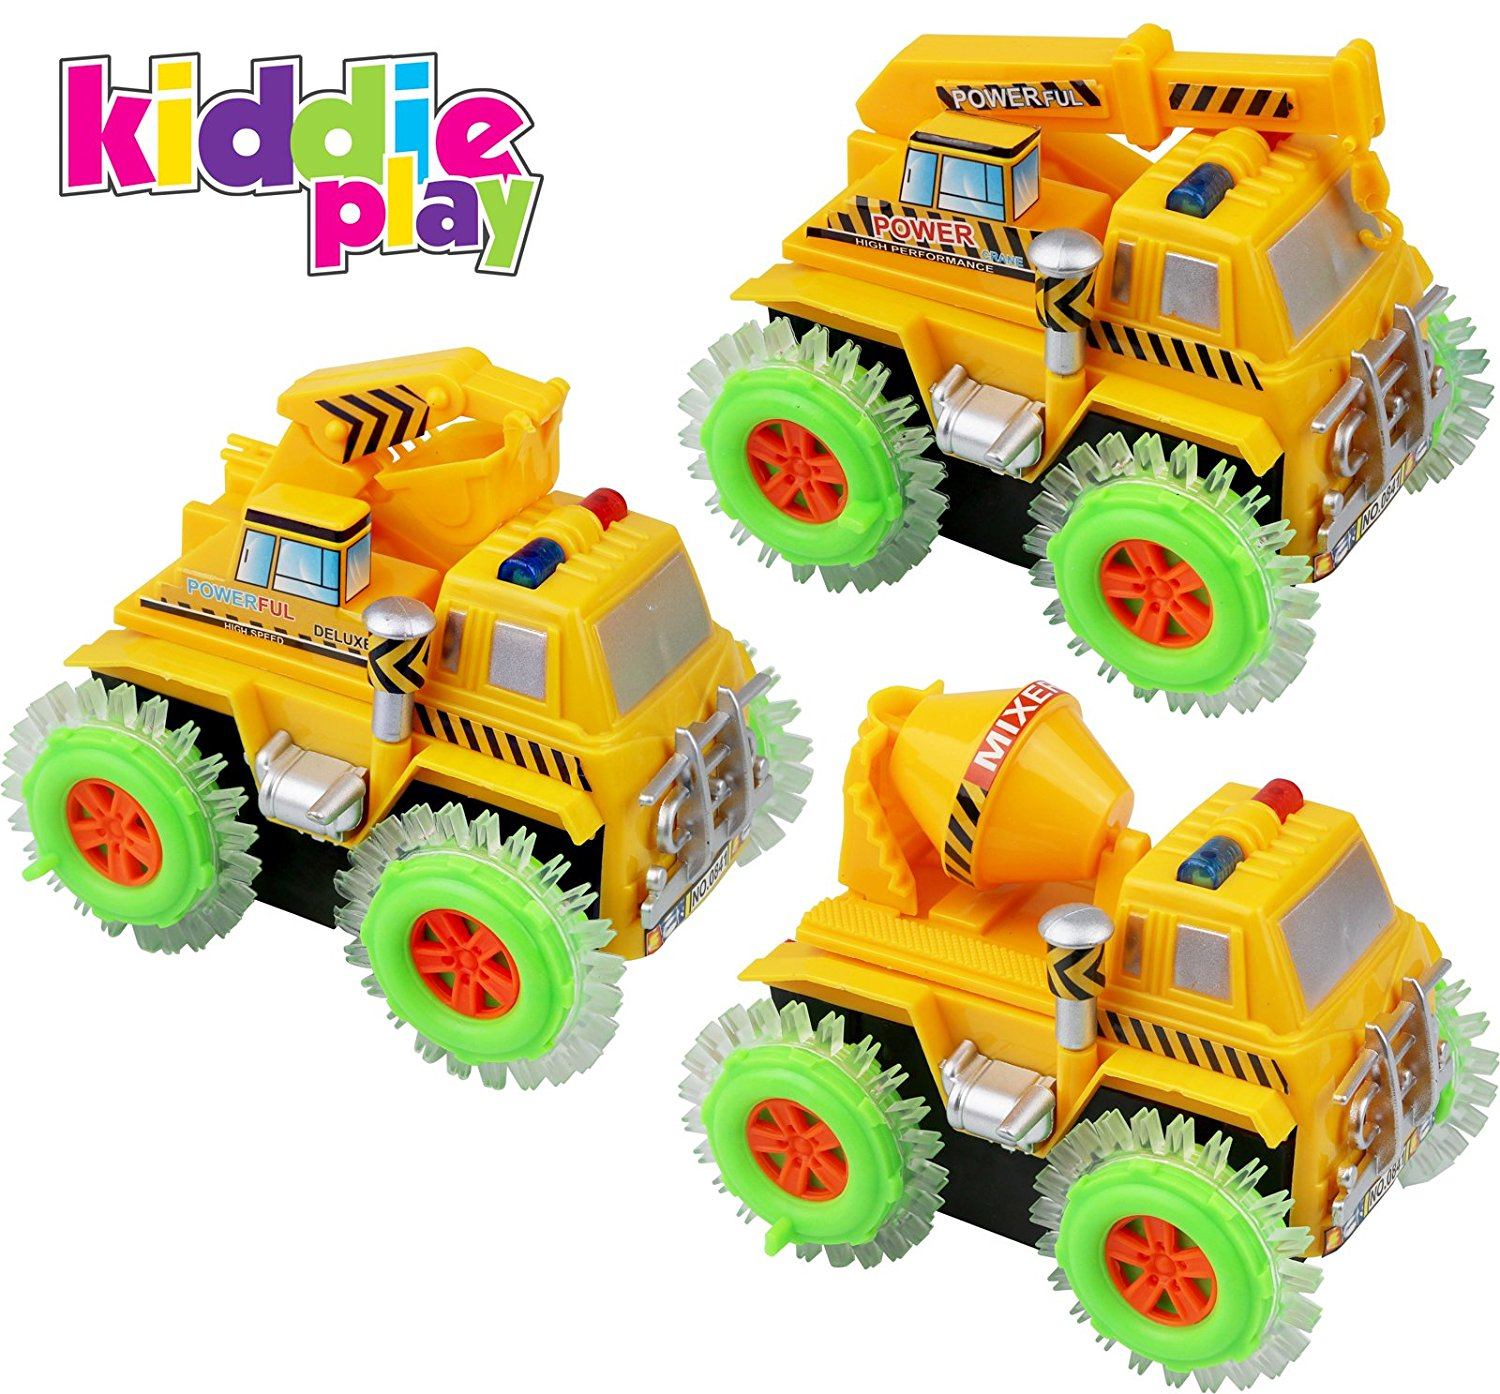 buy kiddie play 3 piece set battery operated stunt tumbling